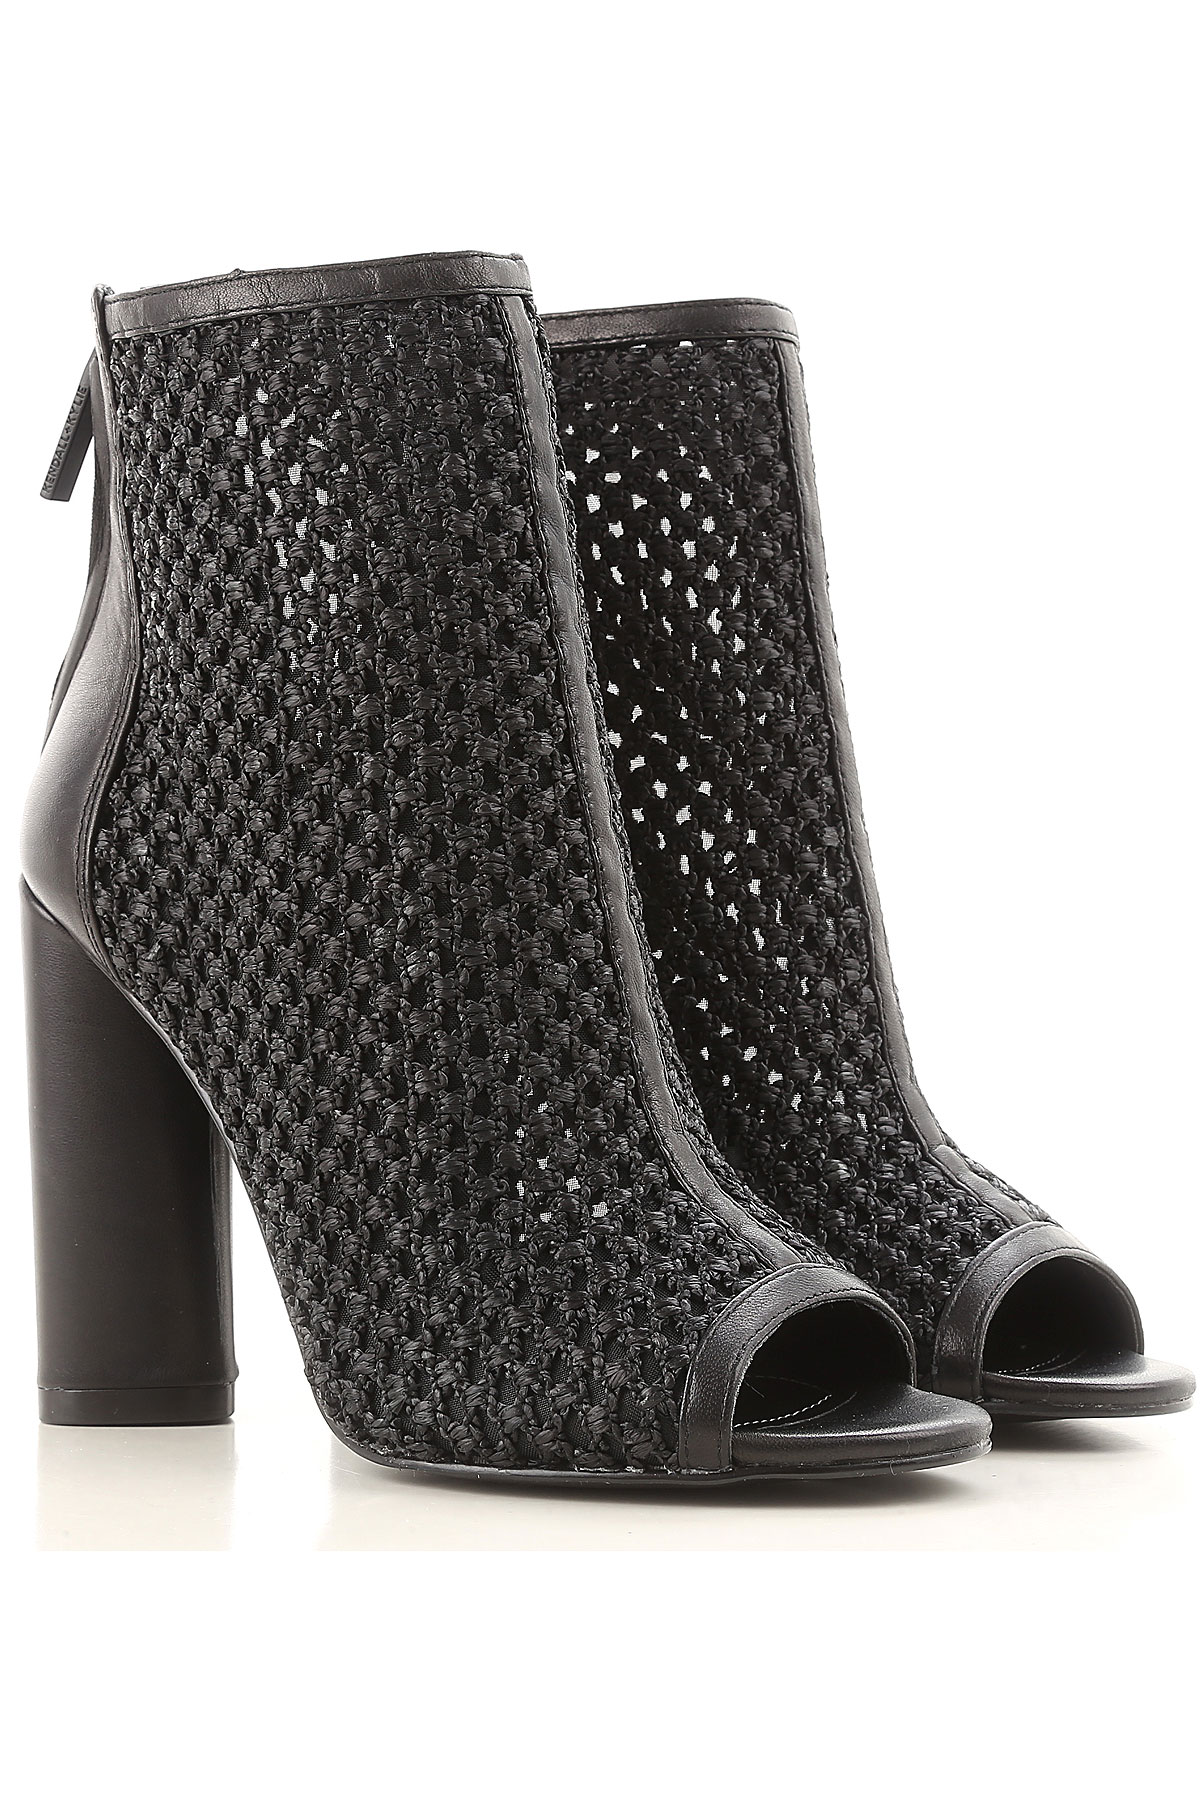 Image of Kendall Kylie Boots for Women, Booties On Sale, Black, Leather, 2017, 7 9.5